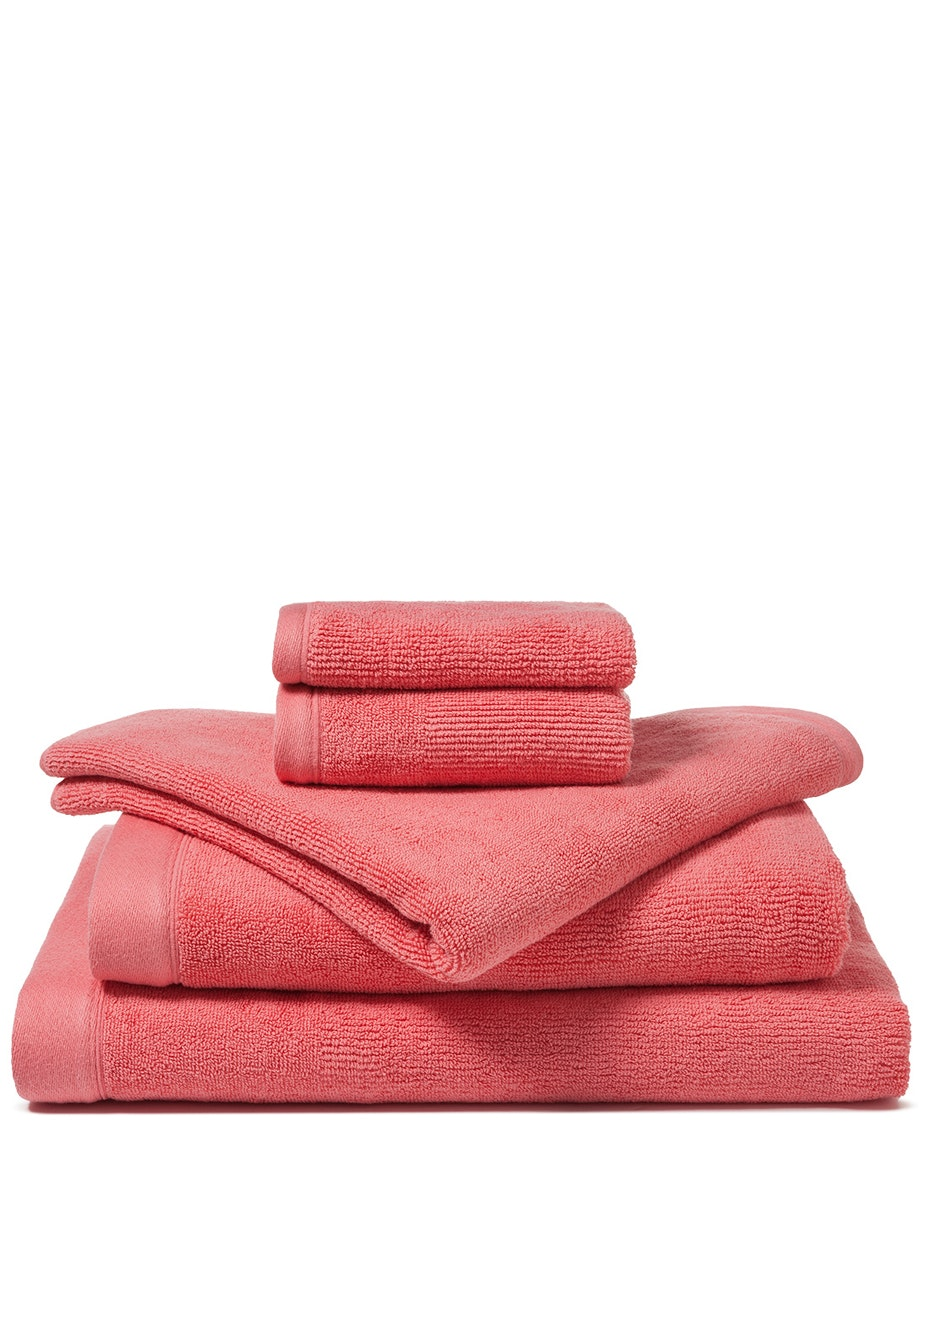 Canningvale - Corduroy Rib Bath Sheet Shell Pink